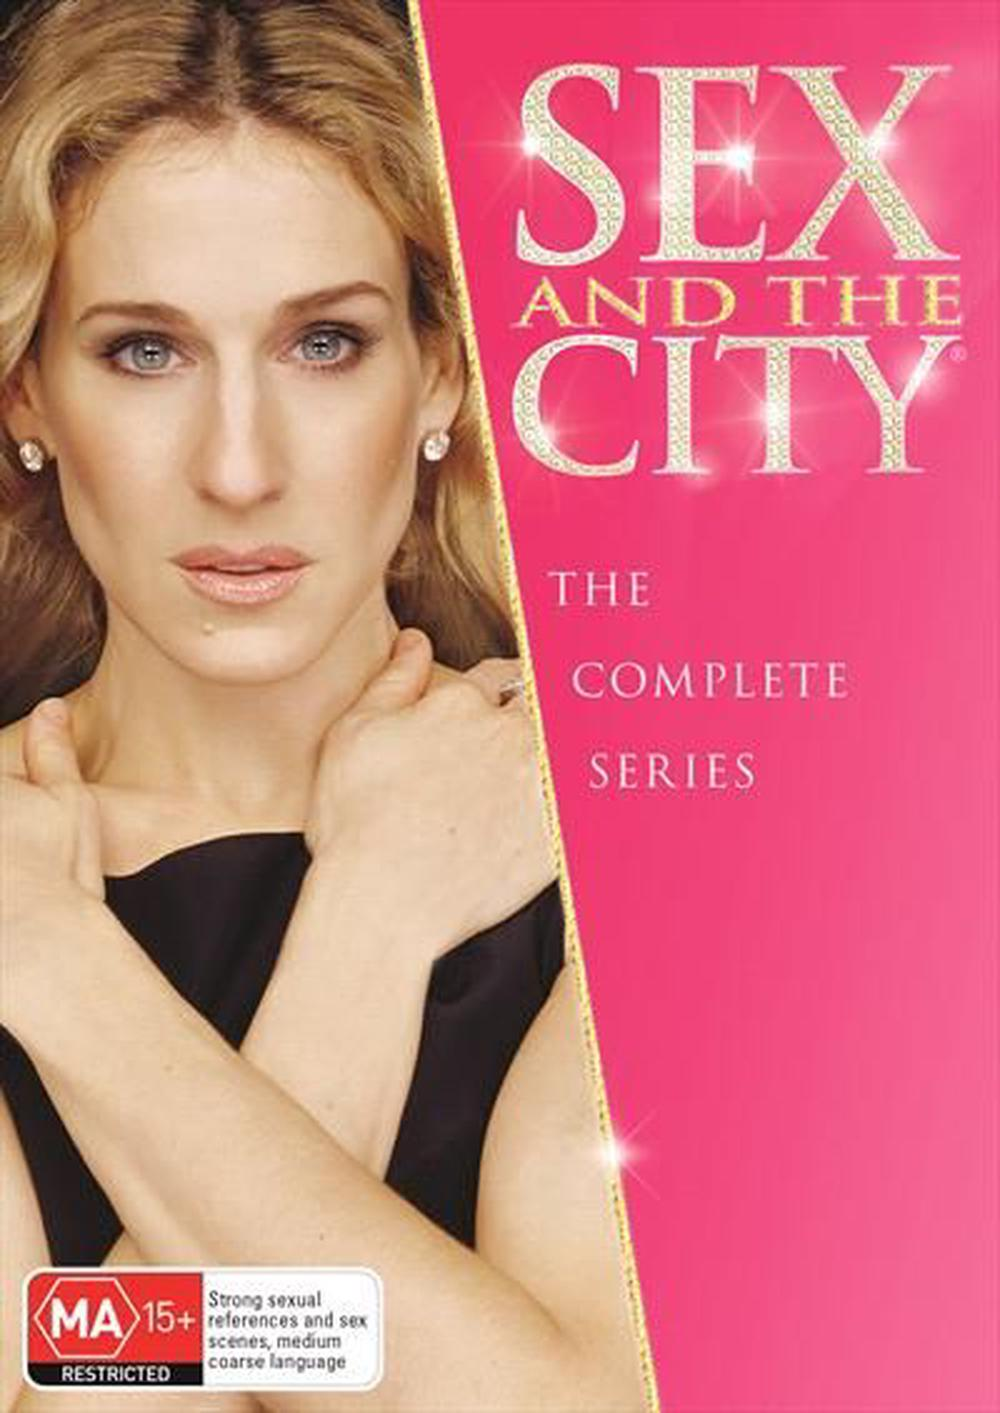 Buy sex and the city online